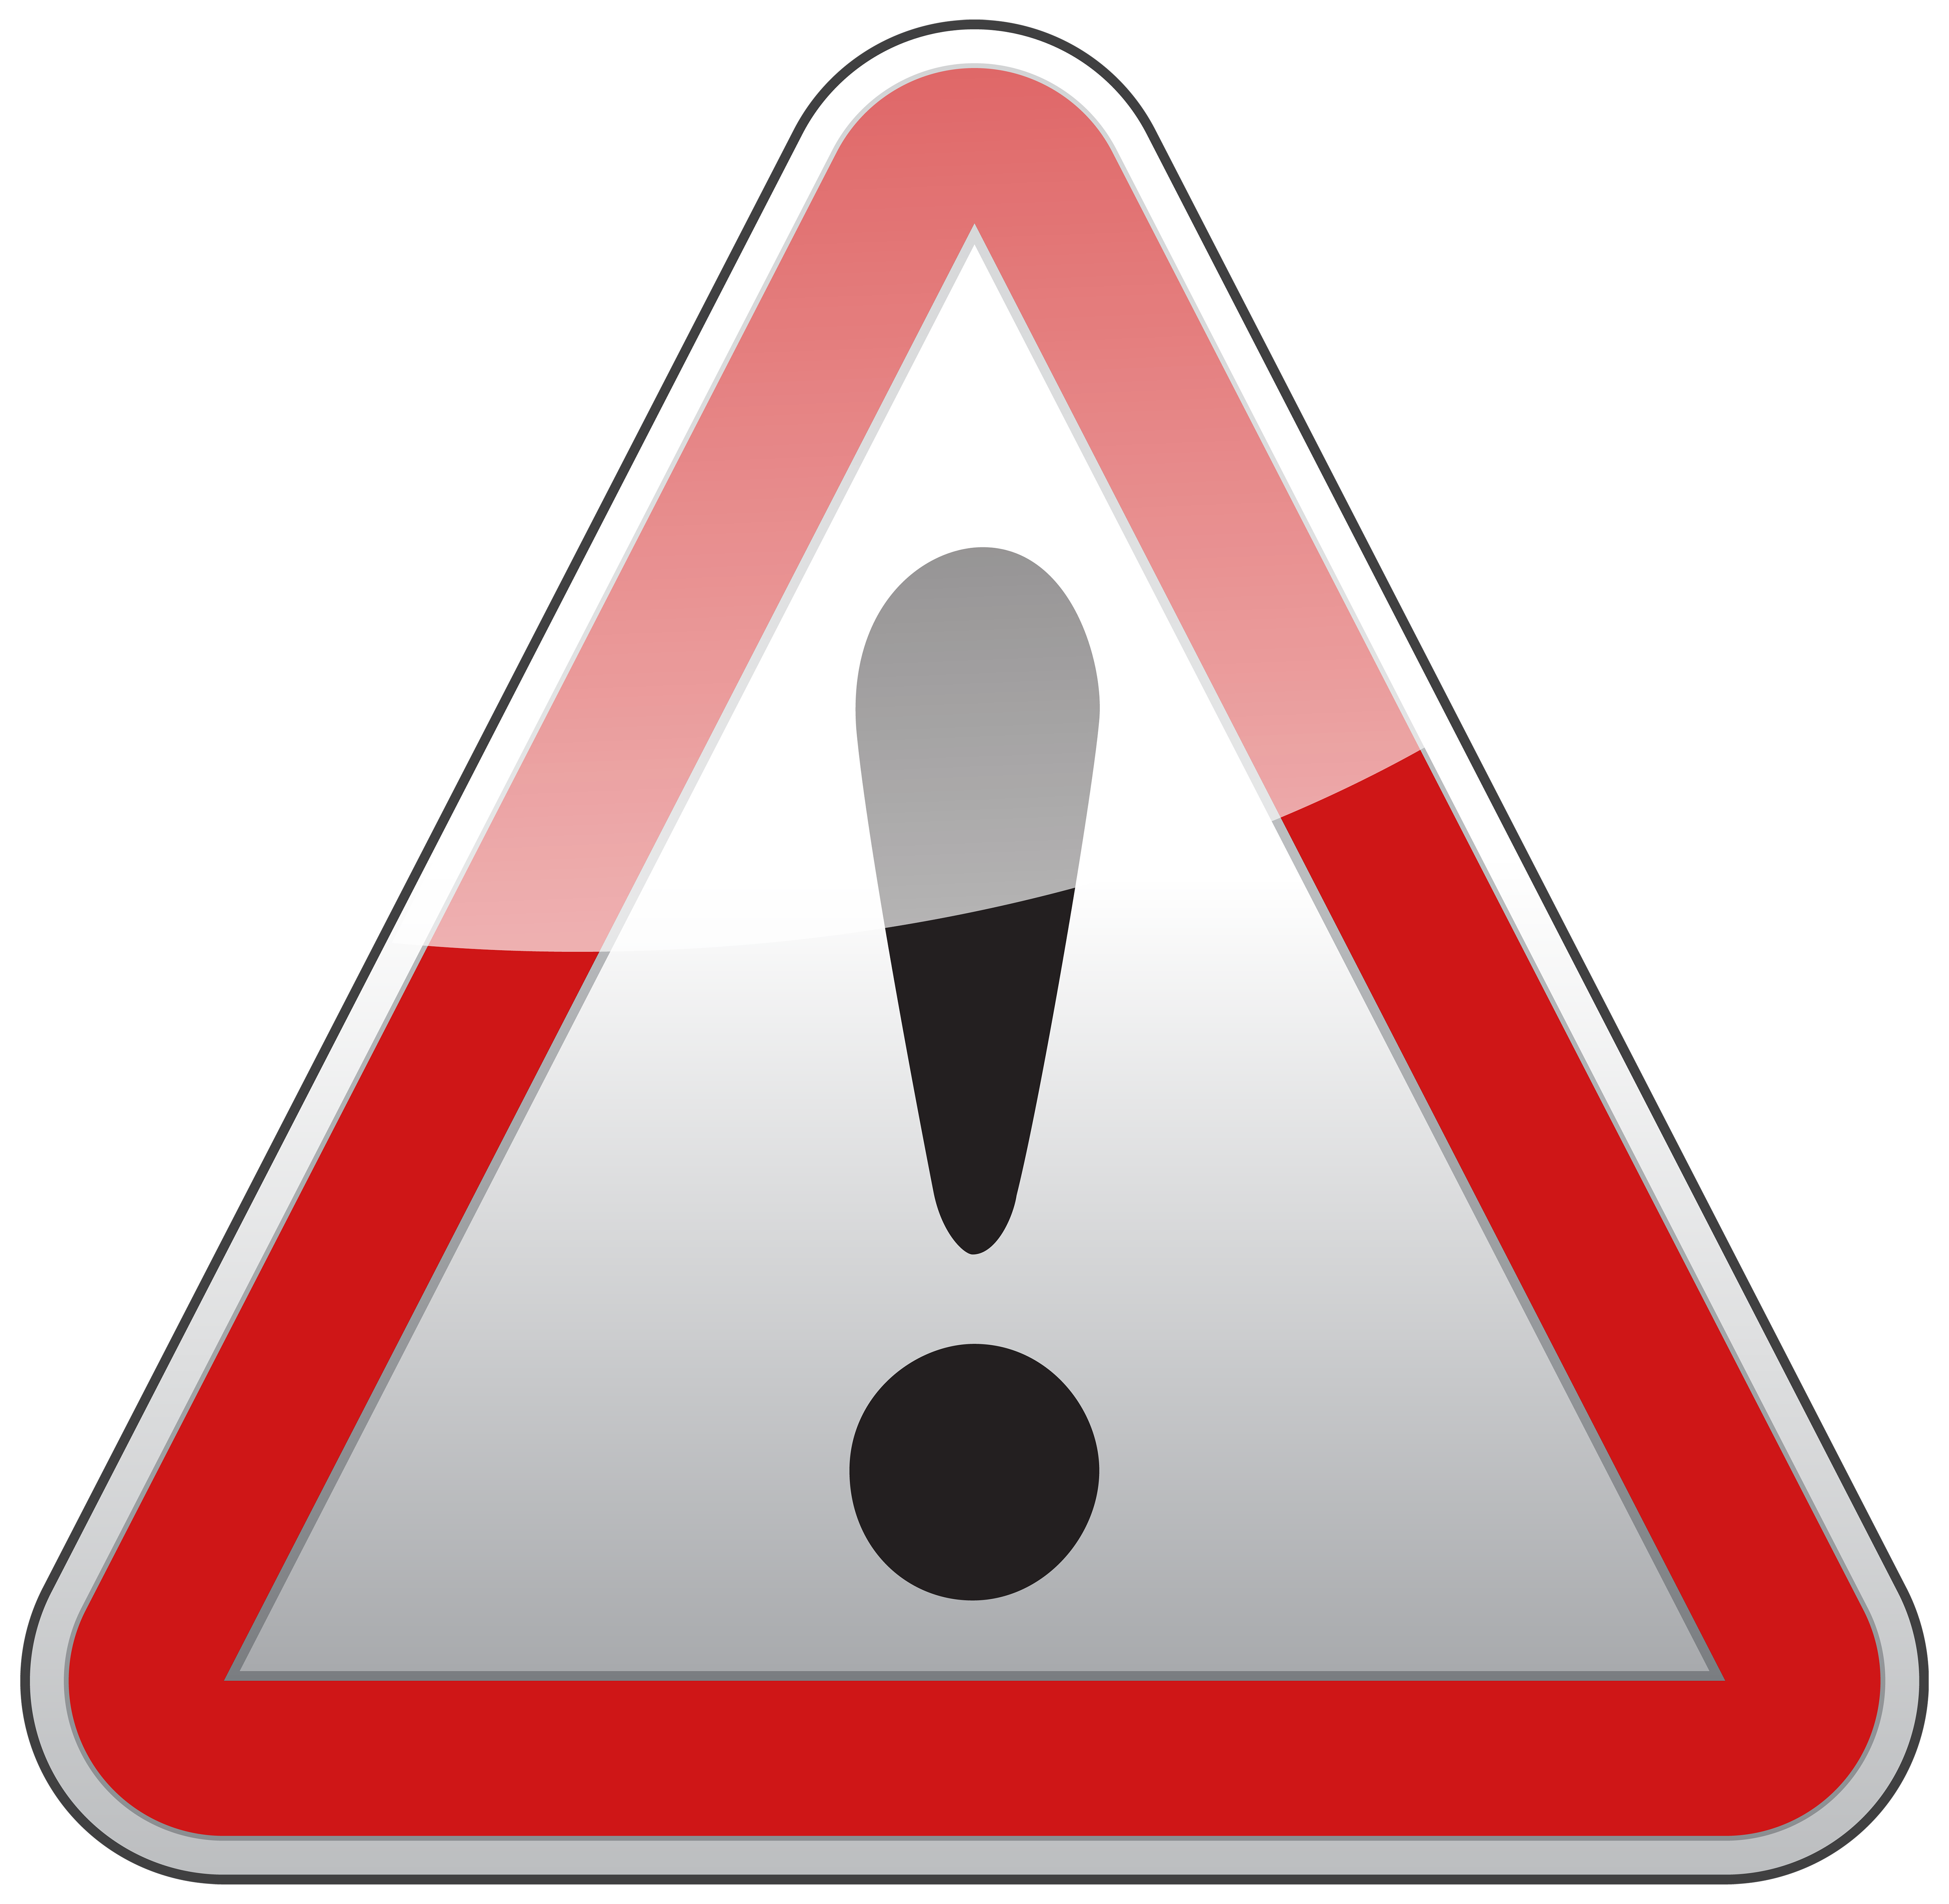 Triangle clipart file. Warning sign png best